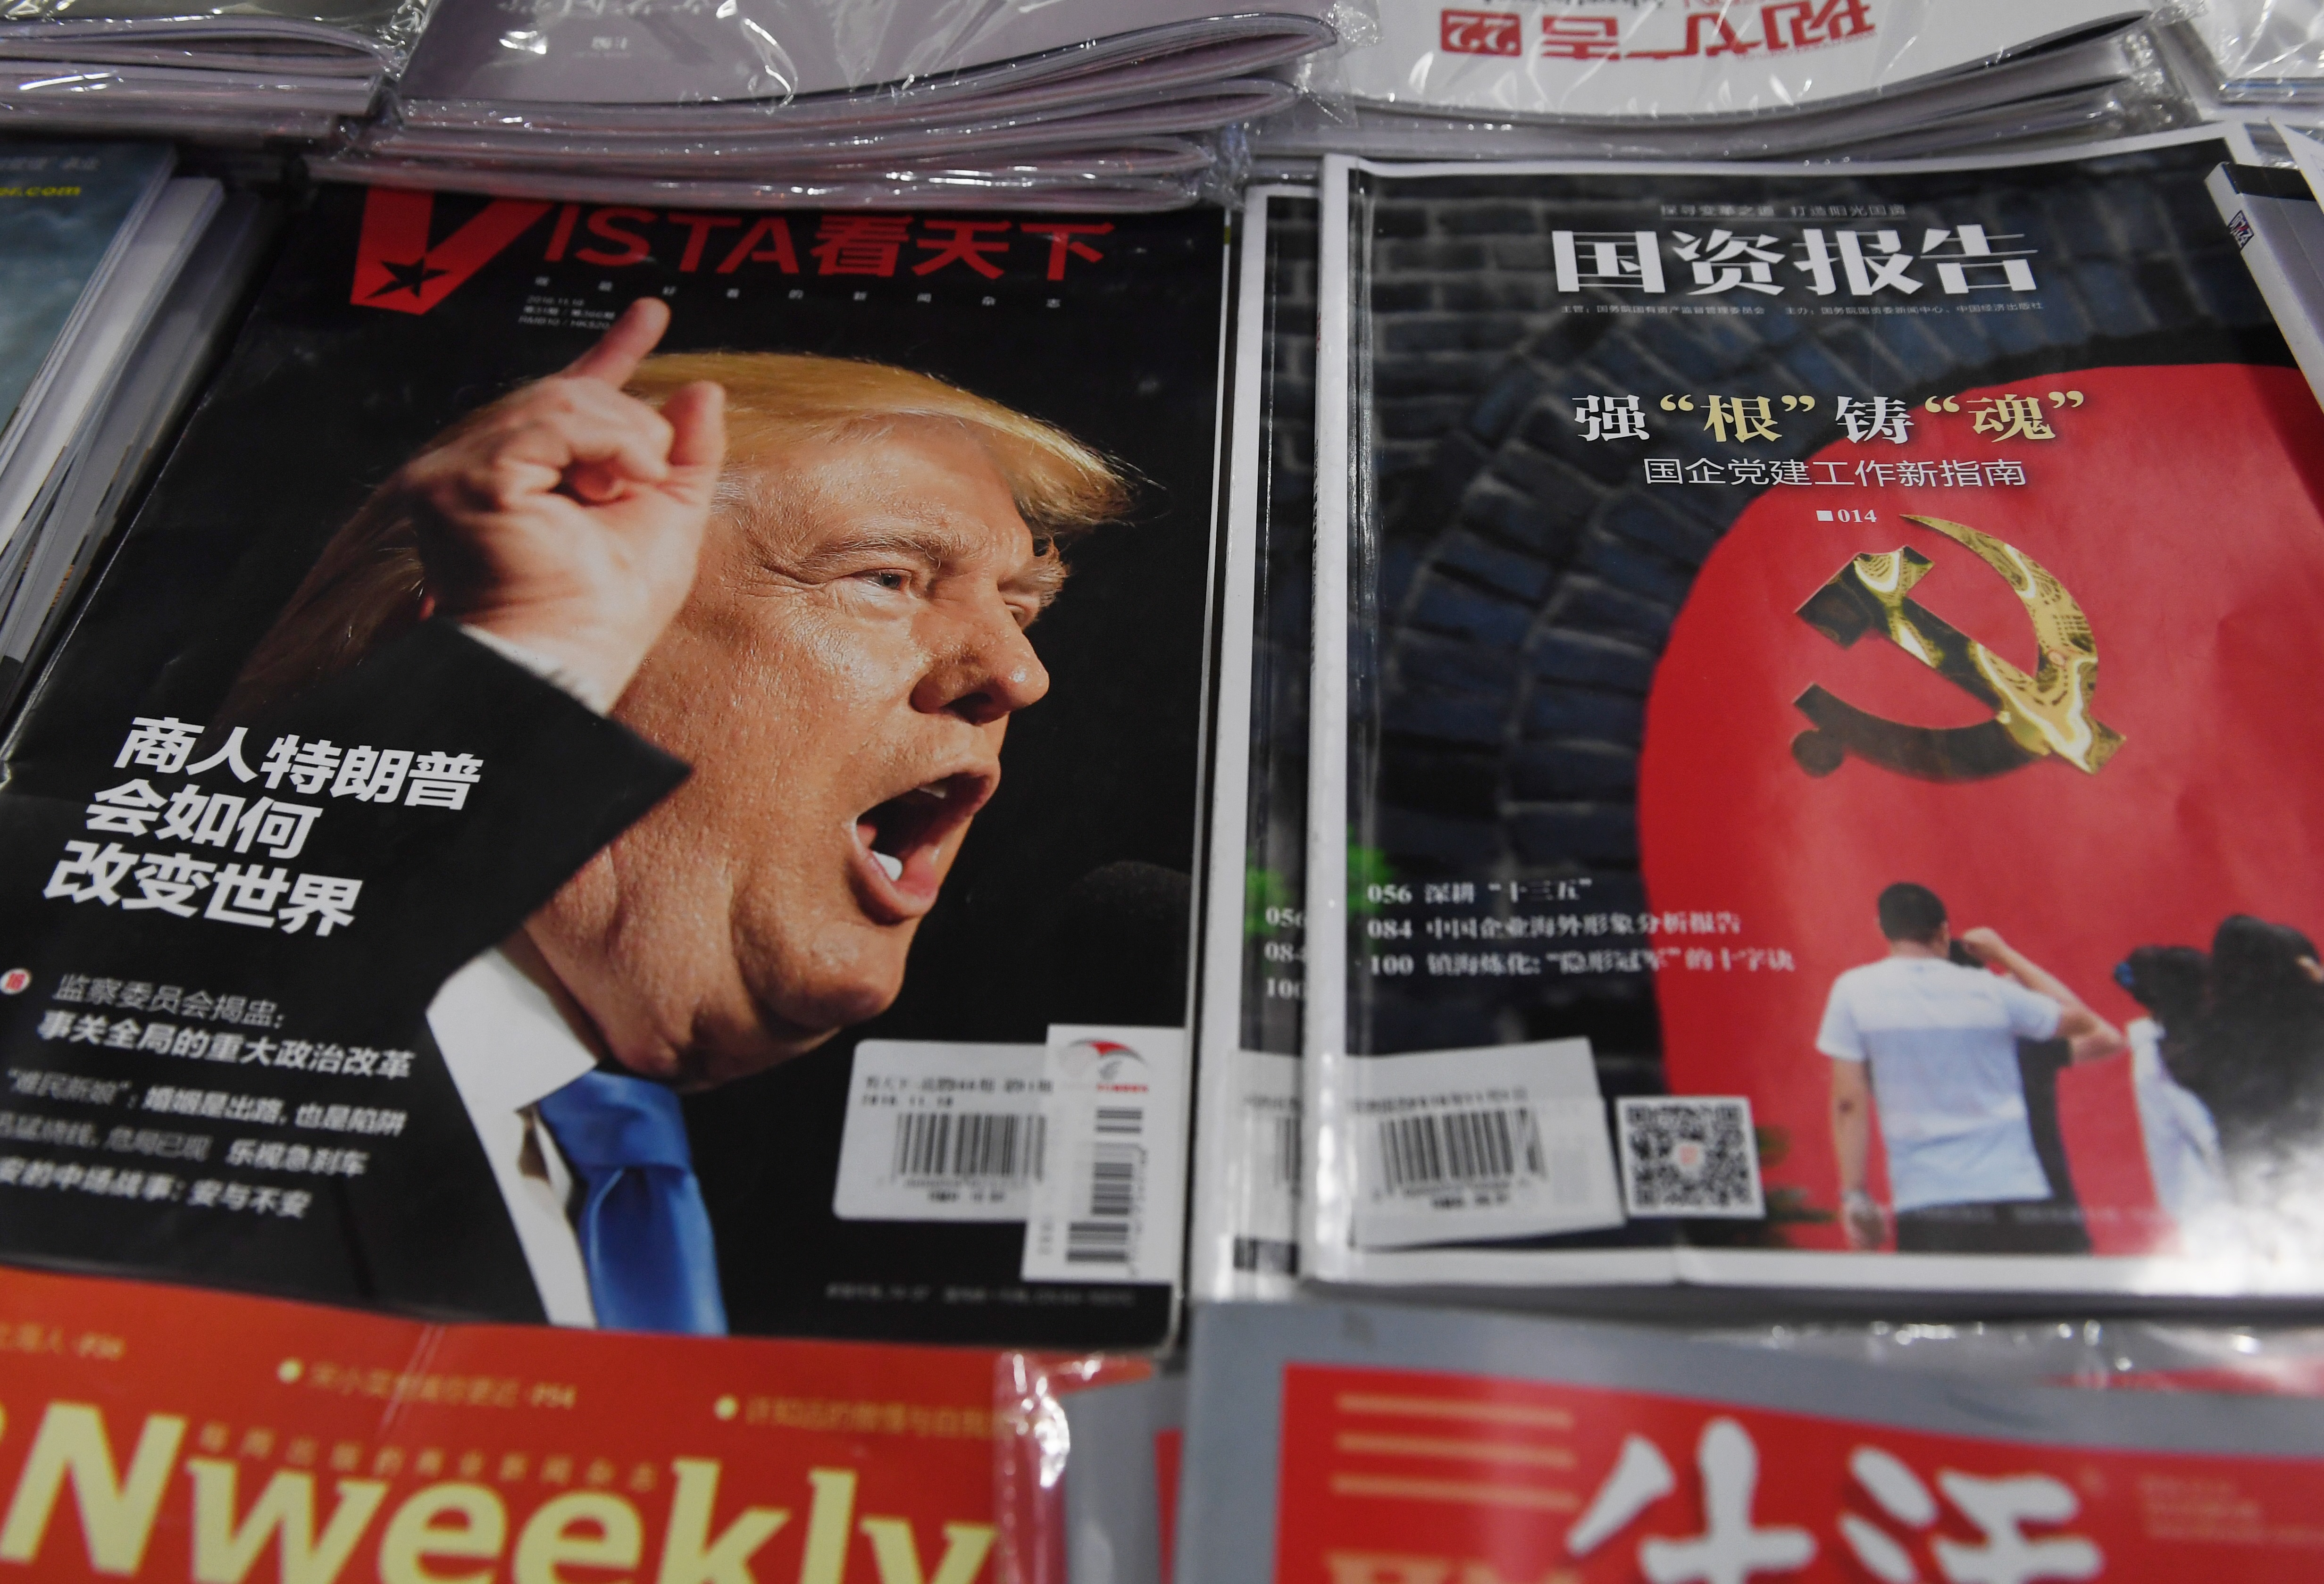 A Chinese-language magazine featuring U.S. President-elect Donald Trump is seen at a bookstore in Beijing on Dec. 12, 2016